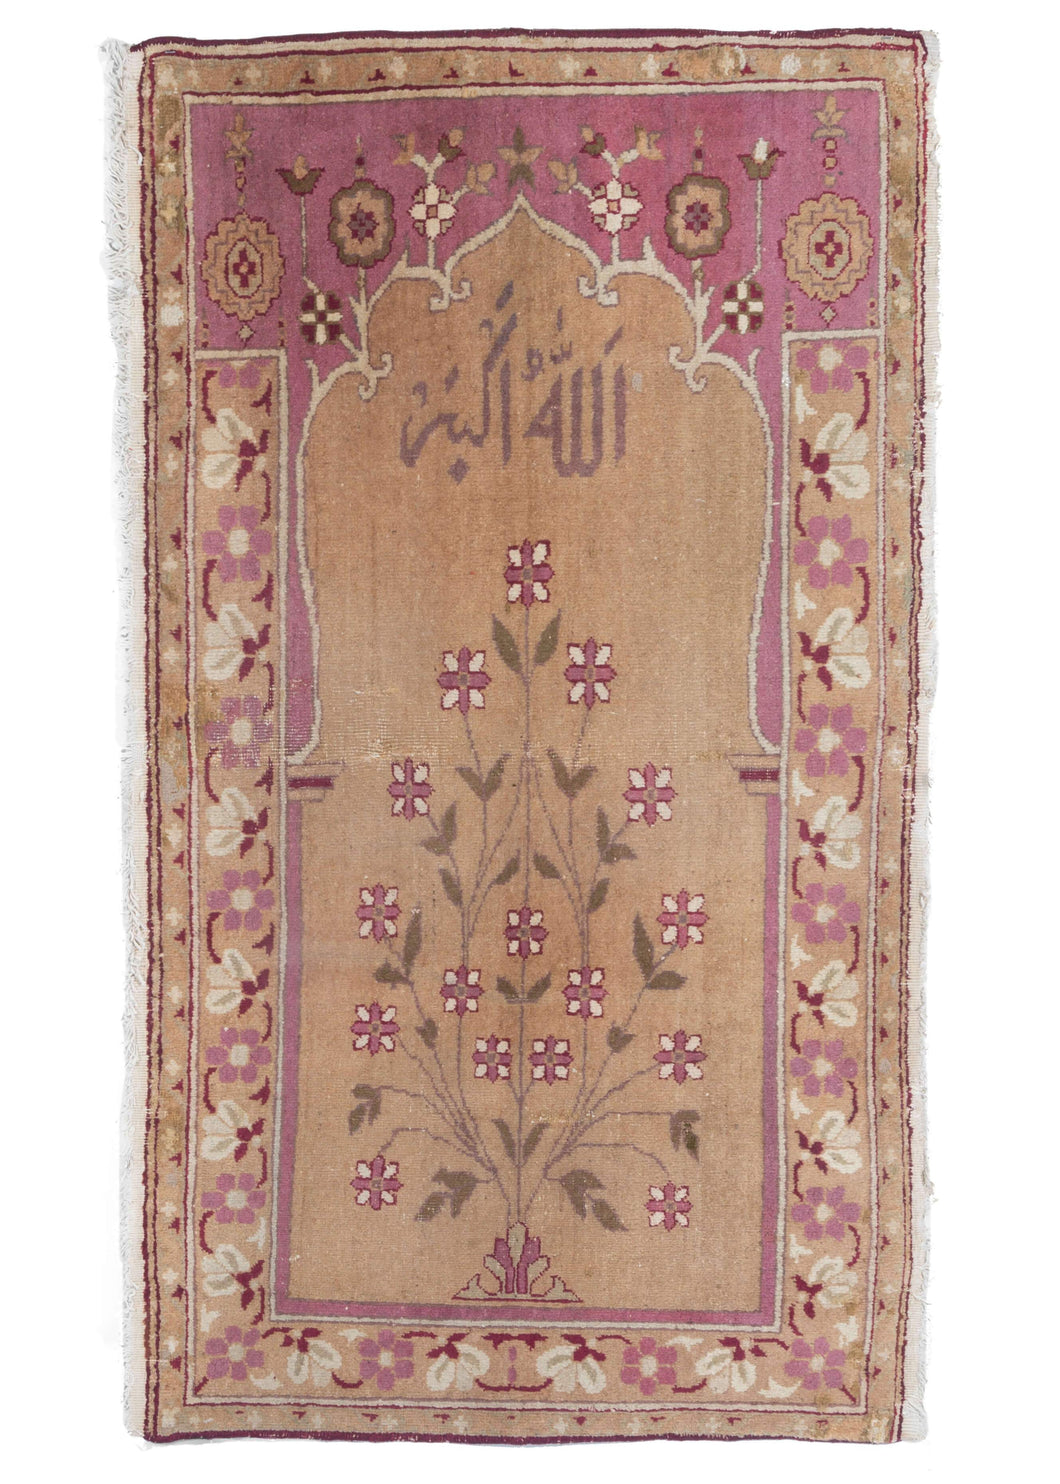 Antique Mughal Northern India Agra Prayer Rug pink and floral